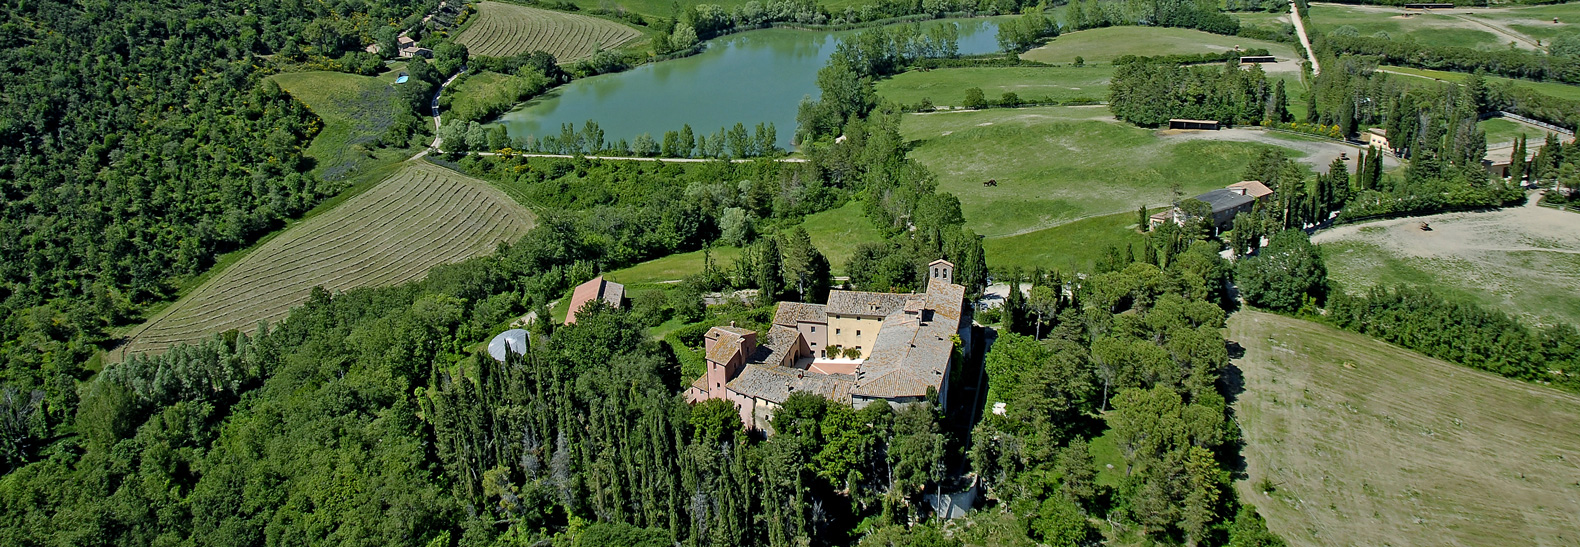 Location Matrimonio Country Chic Toscana : The most beautiful villas in tuscany locations for a dream like